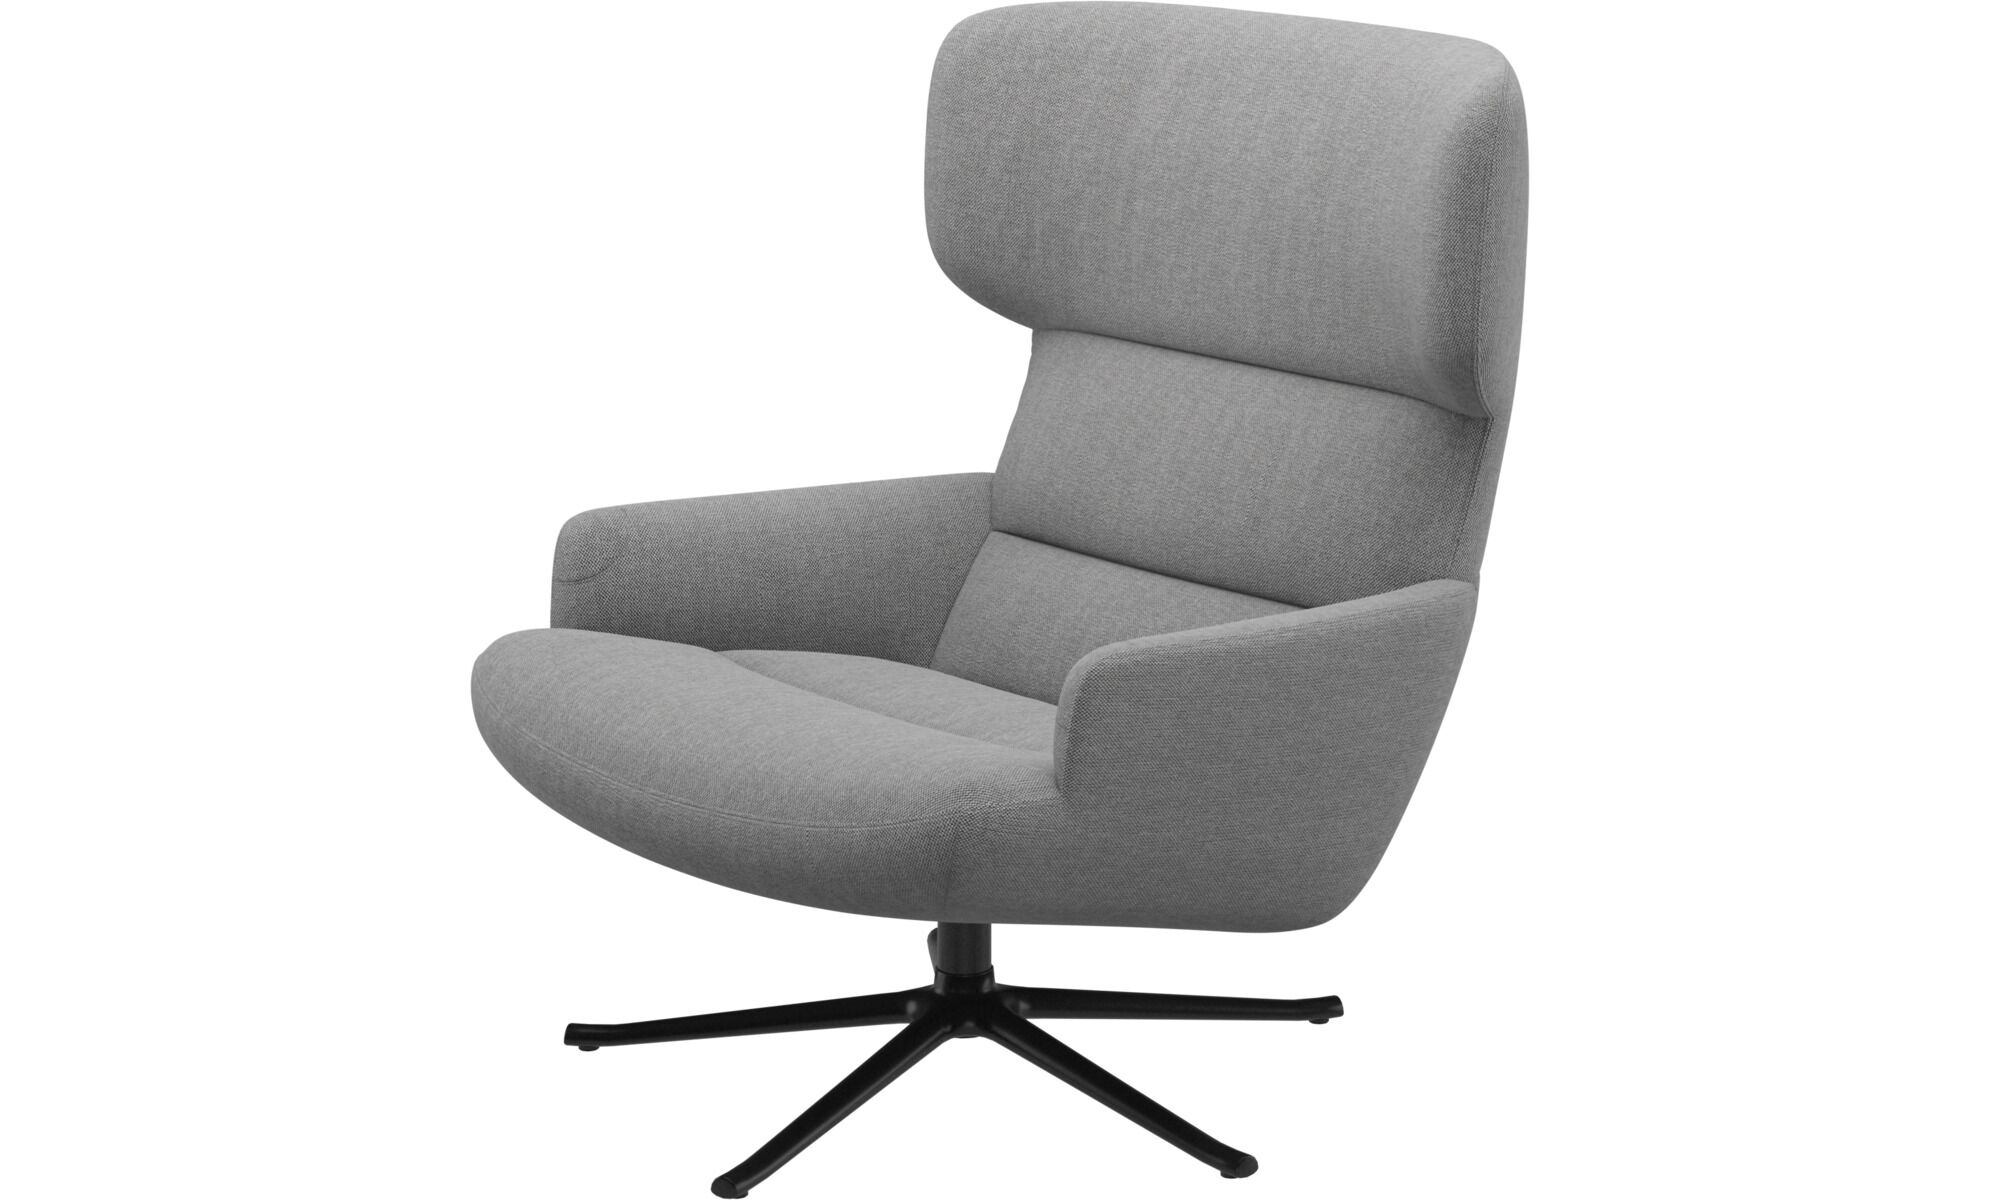 swivel arm chairs white adirondack wood modern armchairs contemporary design from boconcept trento chair with function gray fabric